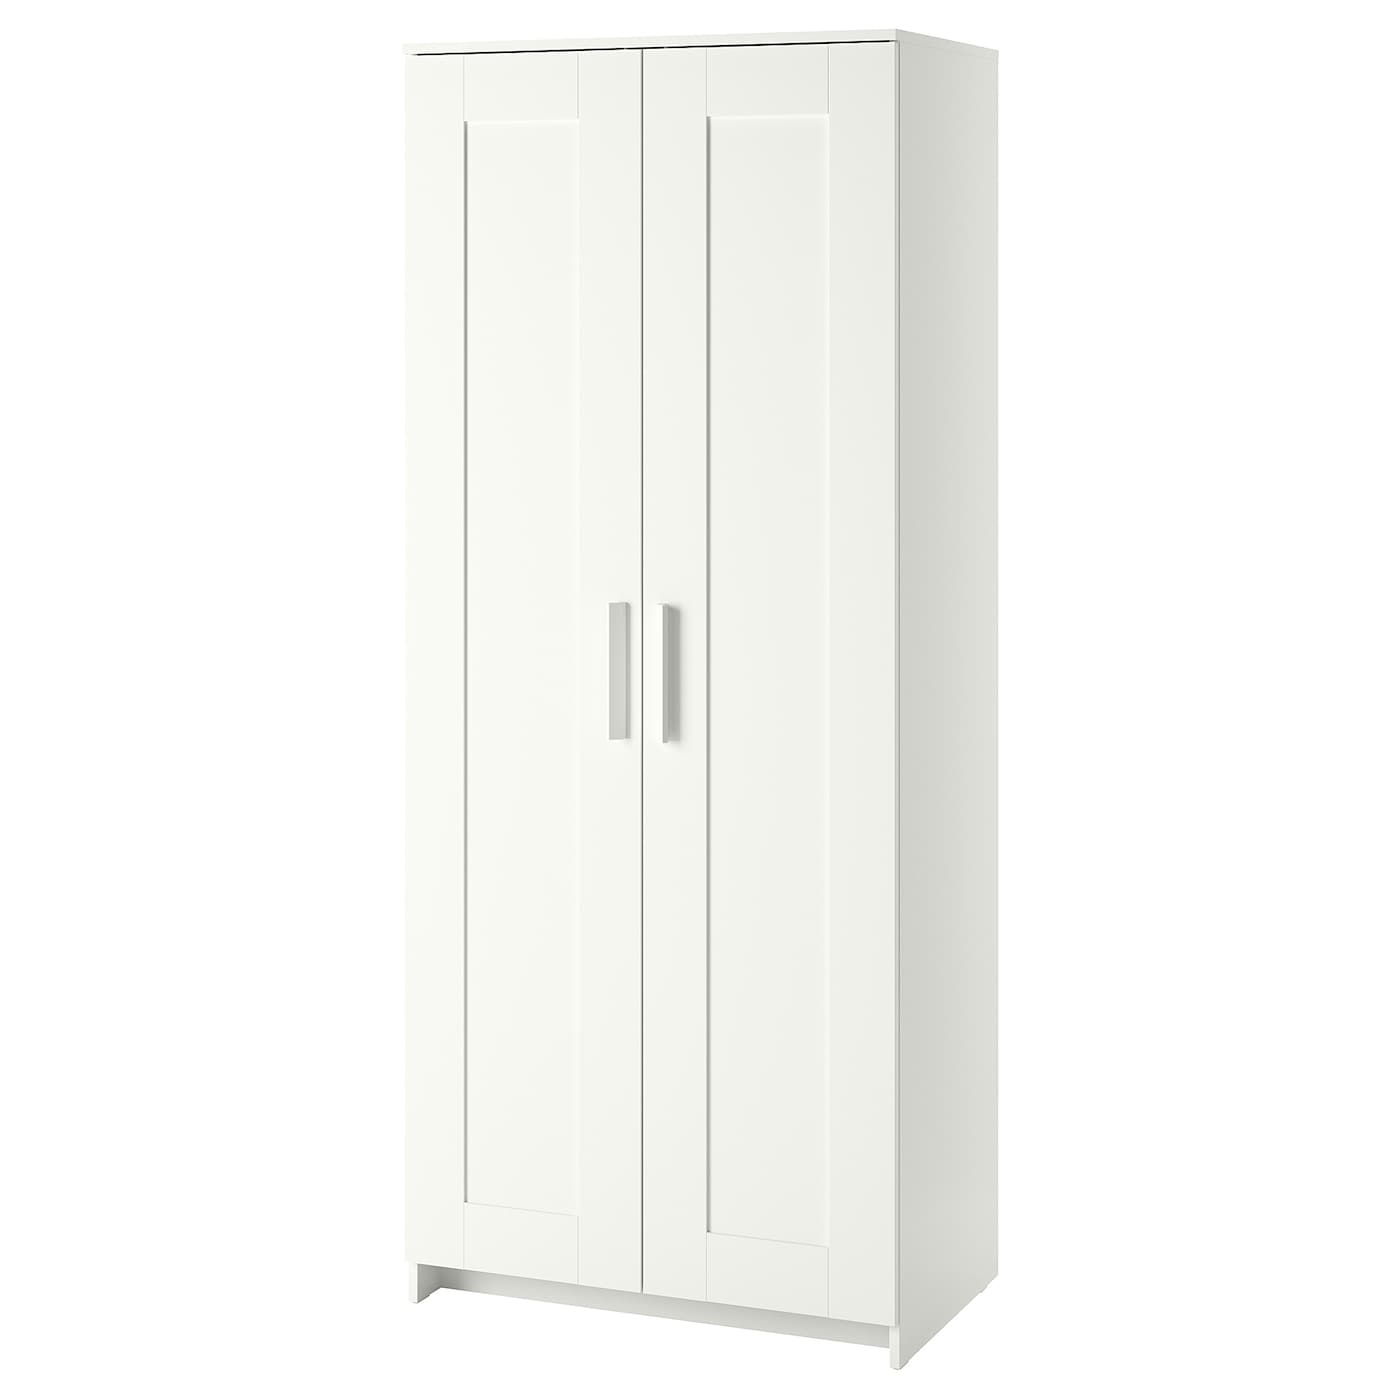 IKEA BRIMNES wardrobe with 2 doors Perfect for folded as well as long and short hanging garments.